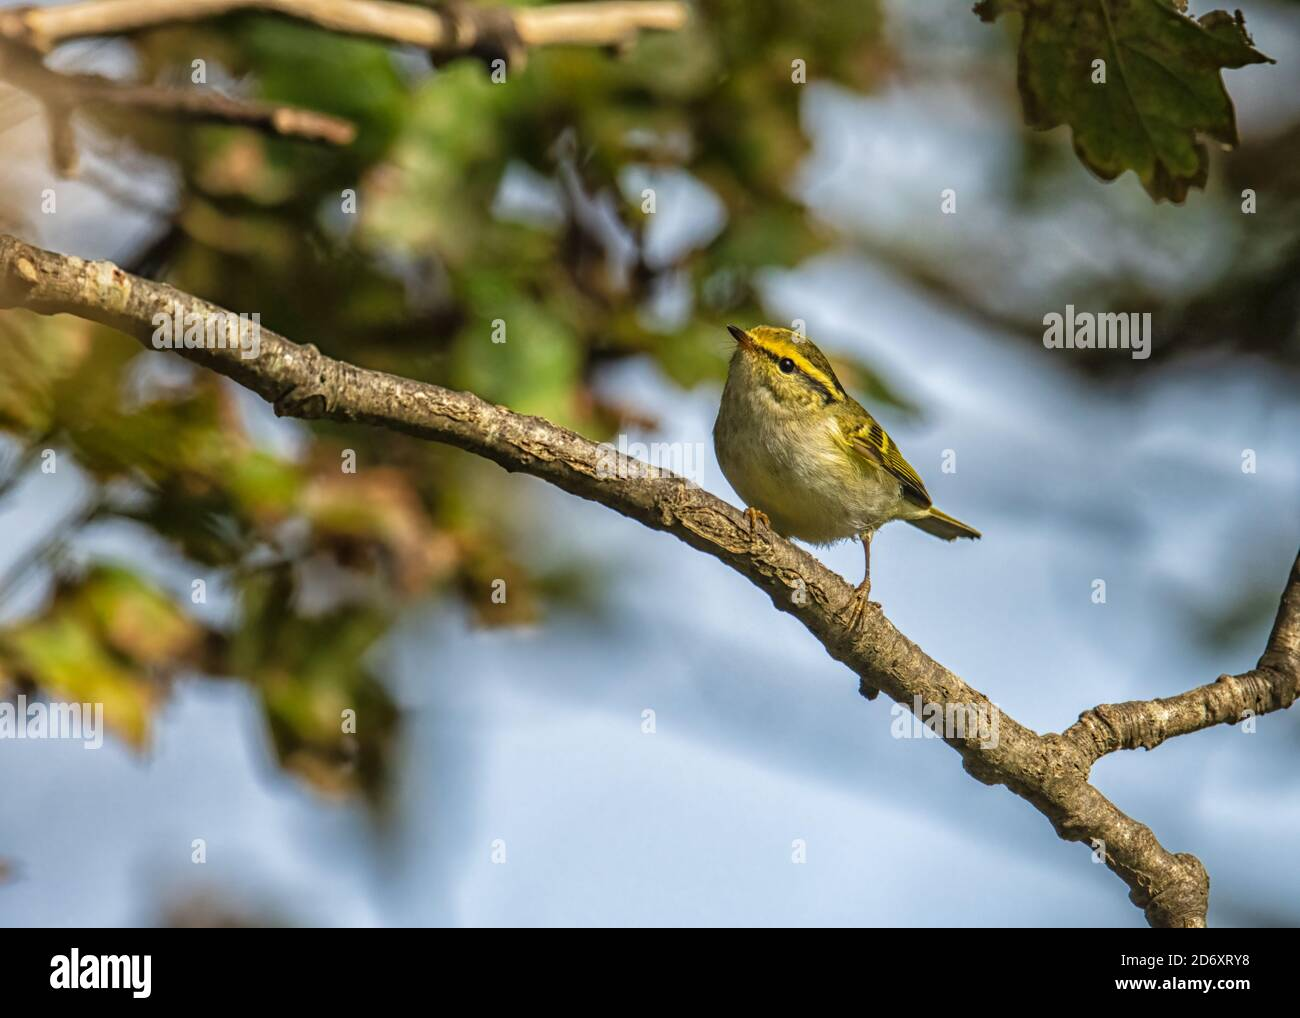 Pallas's leaf warbler Phylloscopus proregulus feeding in the tree canopy eratically Stock Photo